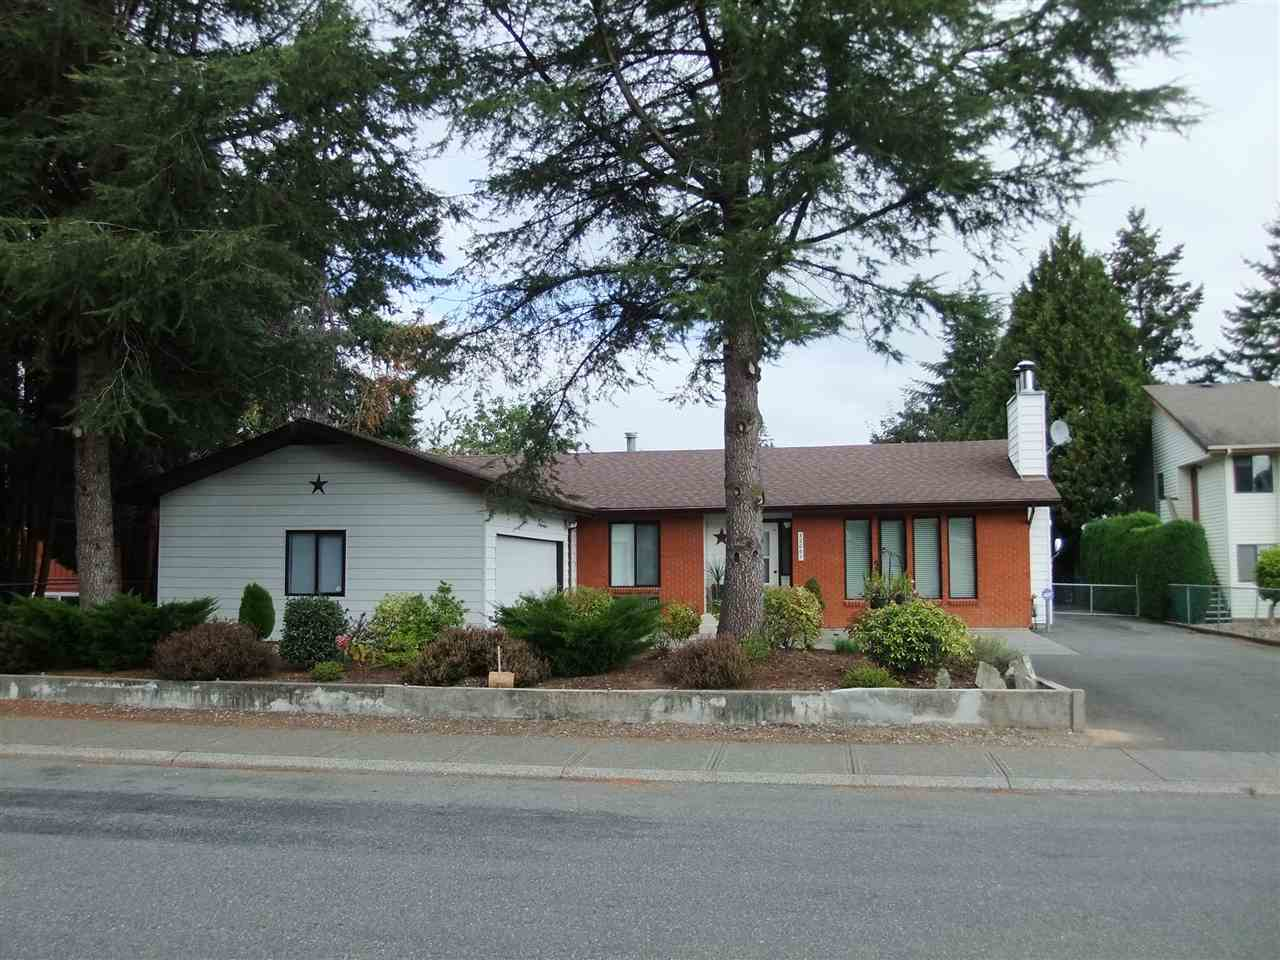 Seller has met with the City of Abbotsford. OCP indicates RML Zoning possible when combined with neighbouring property. RML Zoning allows up to 6 storey building with underground parking and possibility up to 90% building footprint calculation. Purchaser to make their own inquiry with the City of Abbotsford. Water, Sanitary + Storm Sewer at front of property line. No sign on property. House has another double garage in backyard (25'x21')